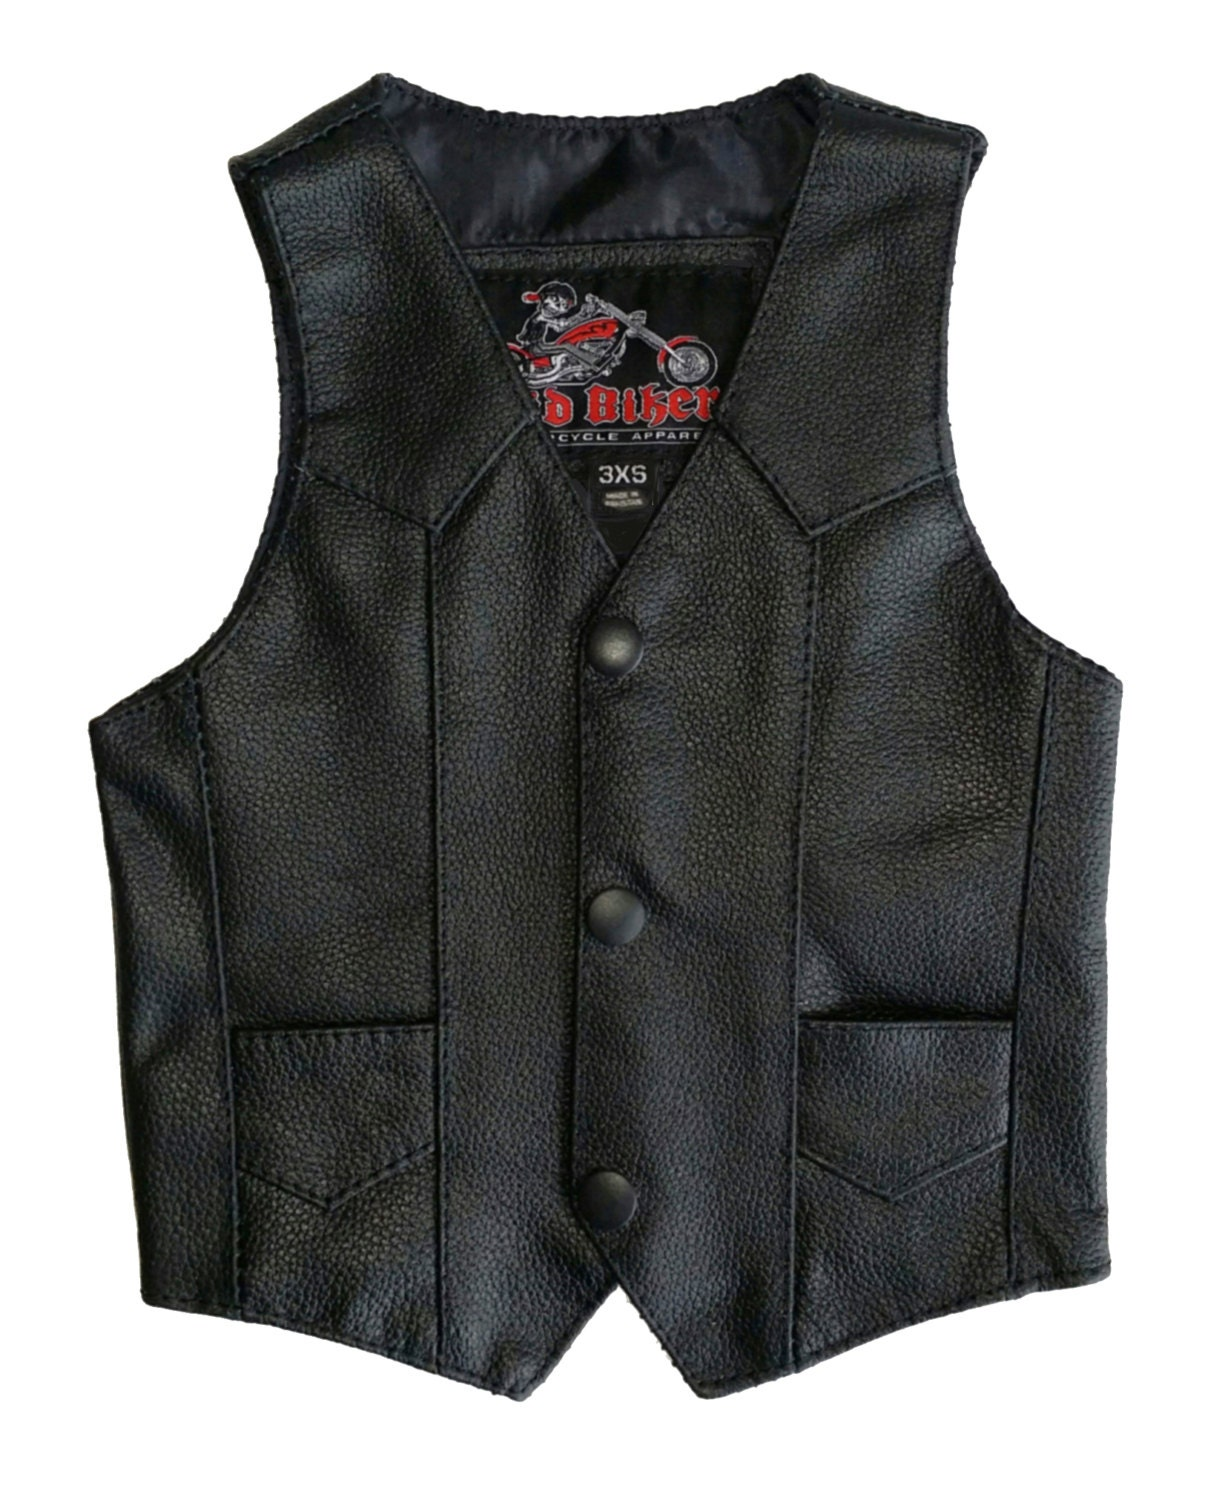 Find great deals on eBay for baby leather vest. Shop with confidence.